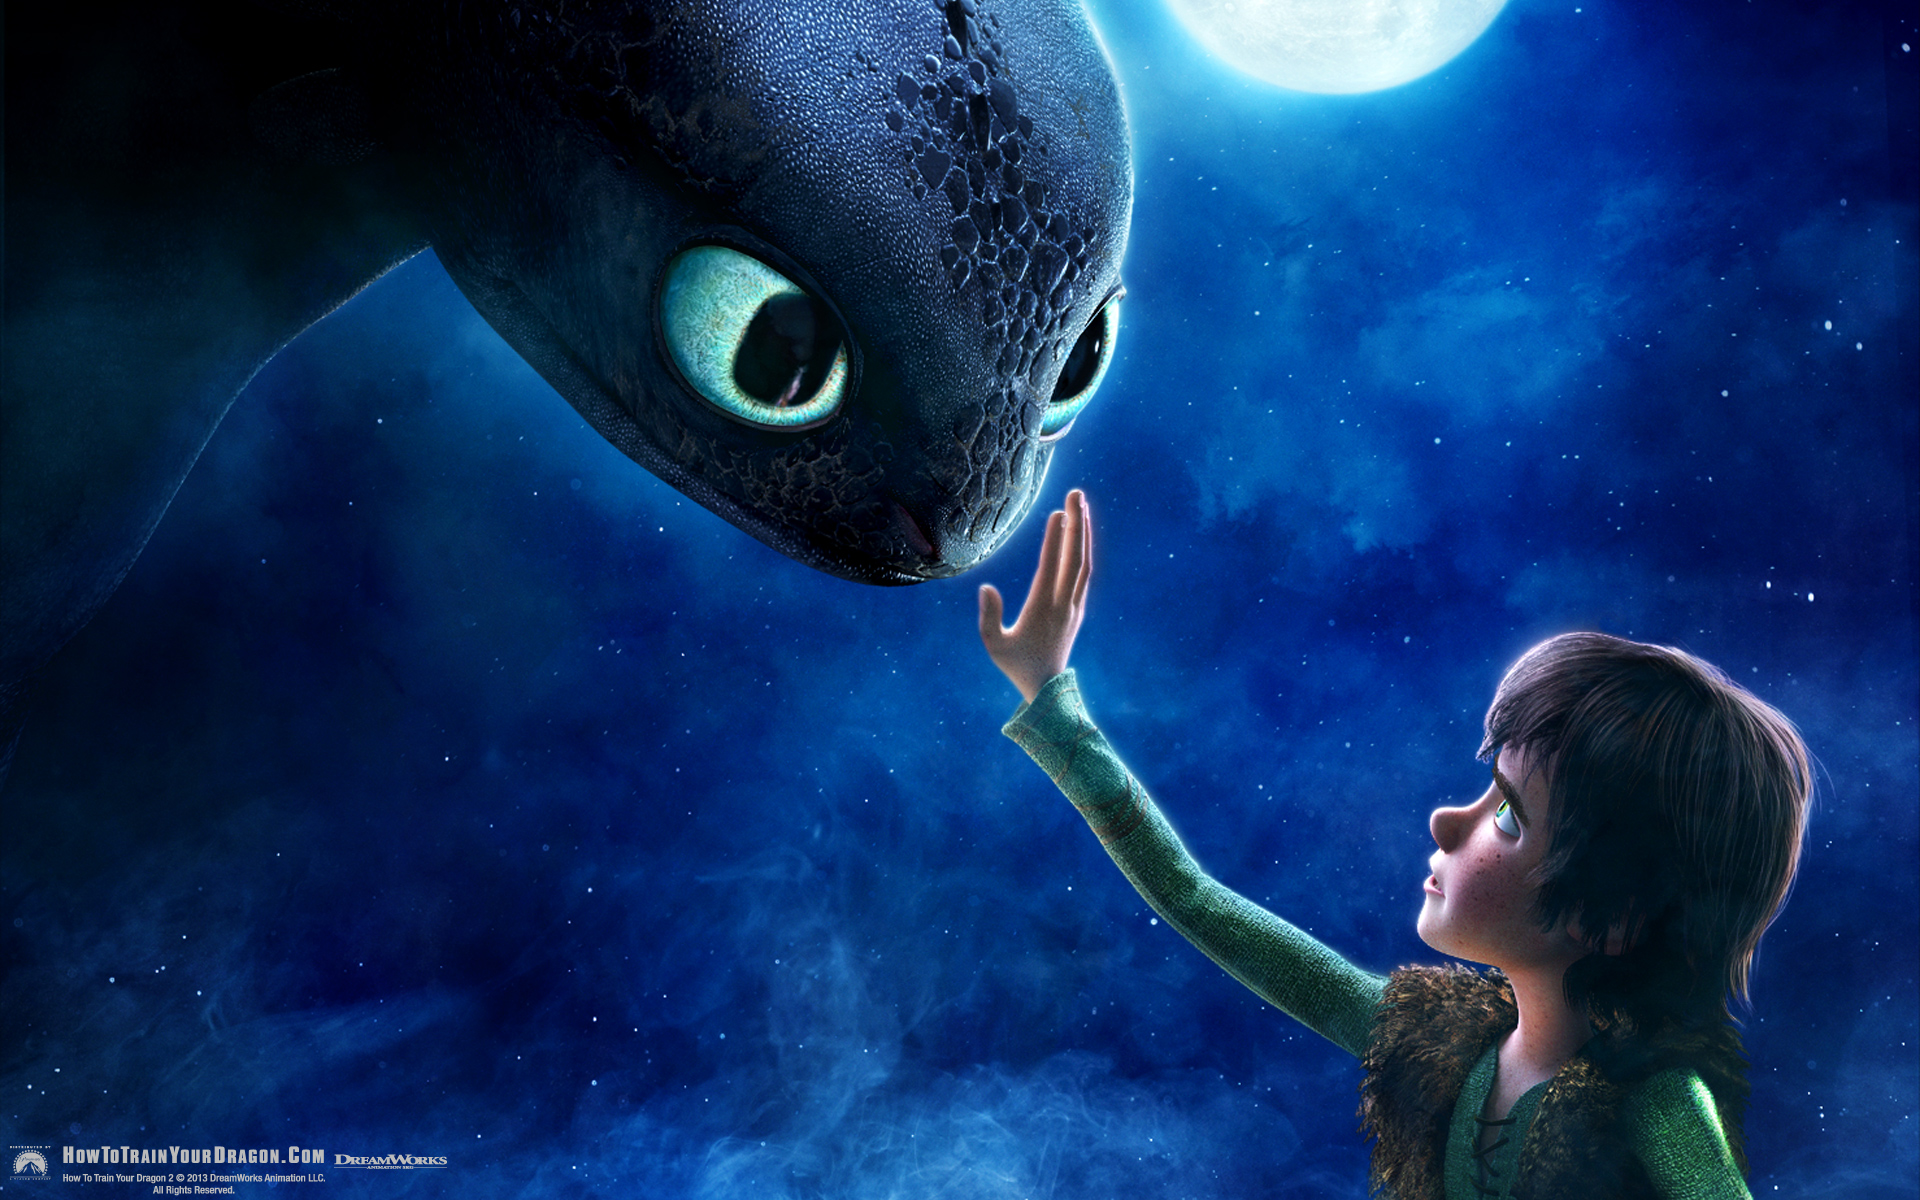 Hiccup And Toothless From How To Train Your Dragon Desktop Wallpaper